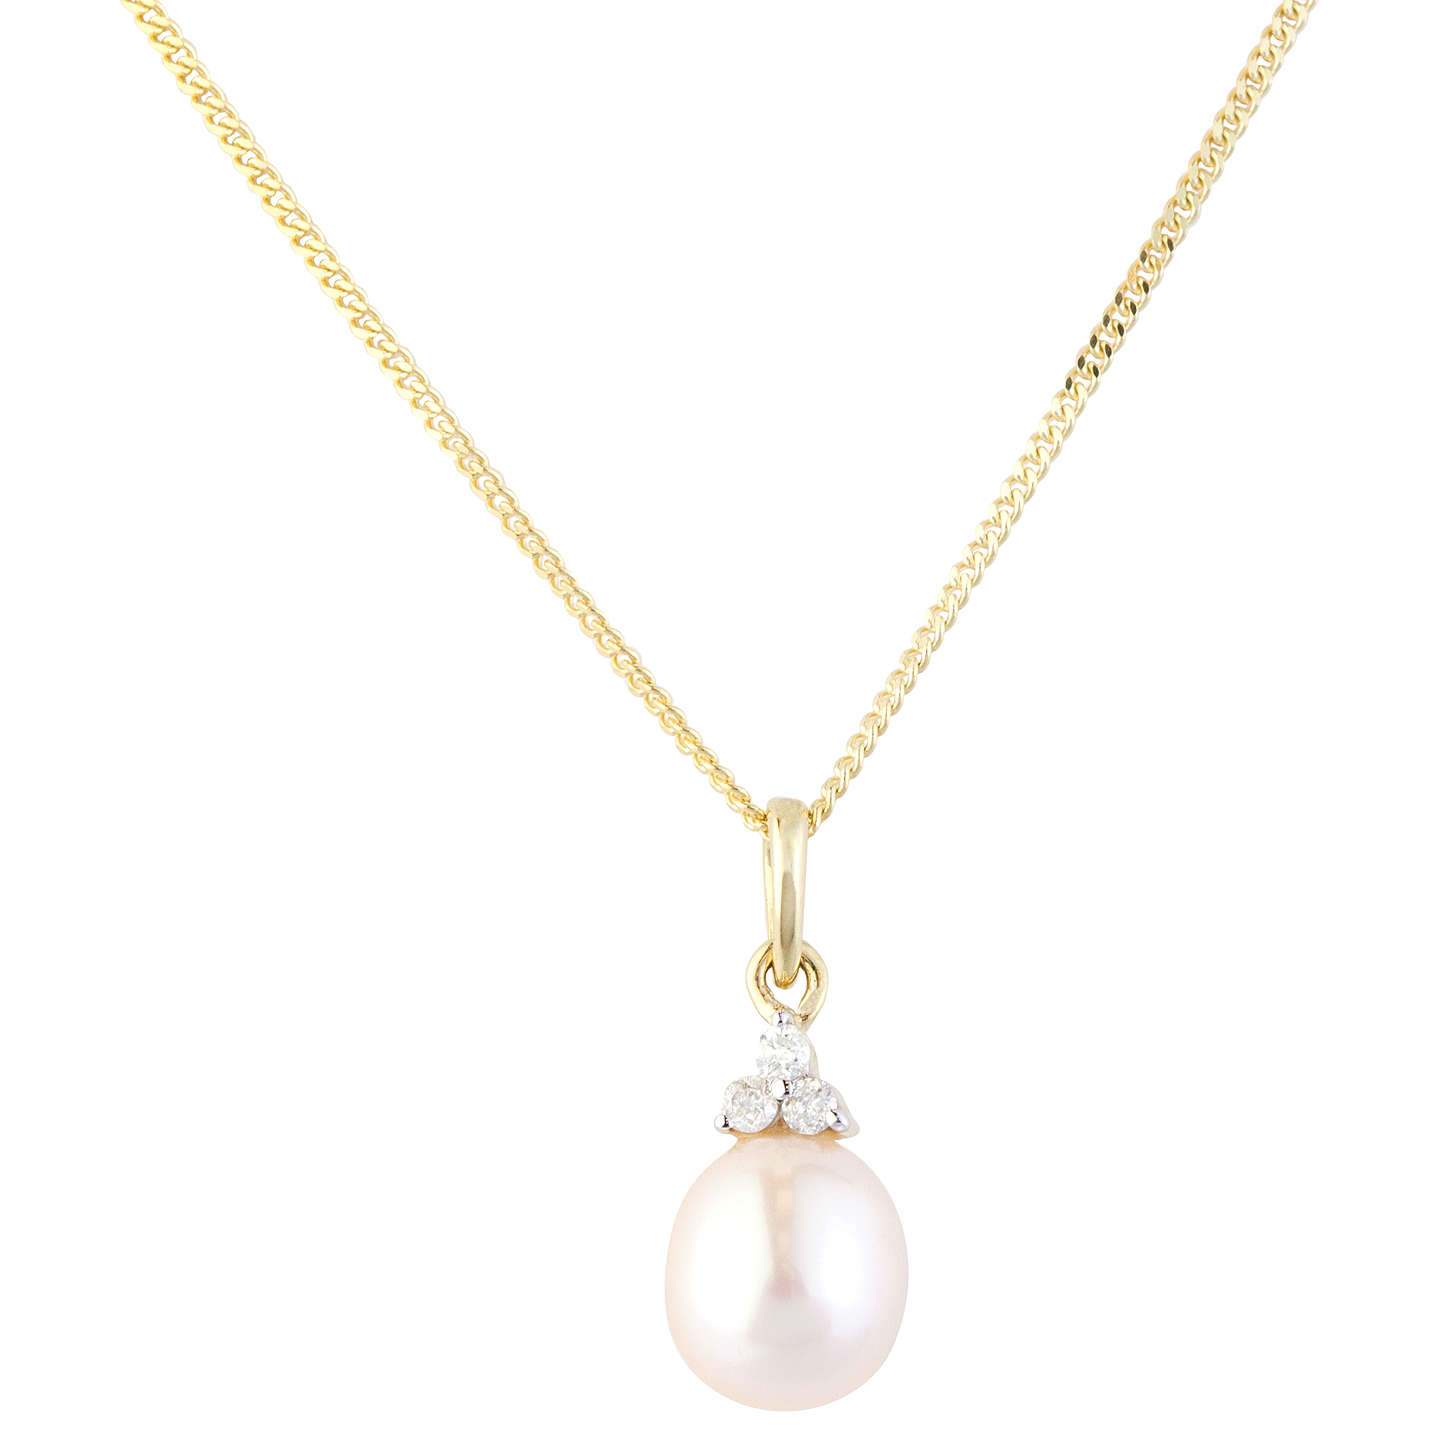 Ruby Wedding Gifts John Lewis: A B Davis 9ct Gold Diamond And Pearl Pendant Necklace